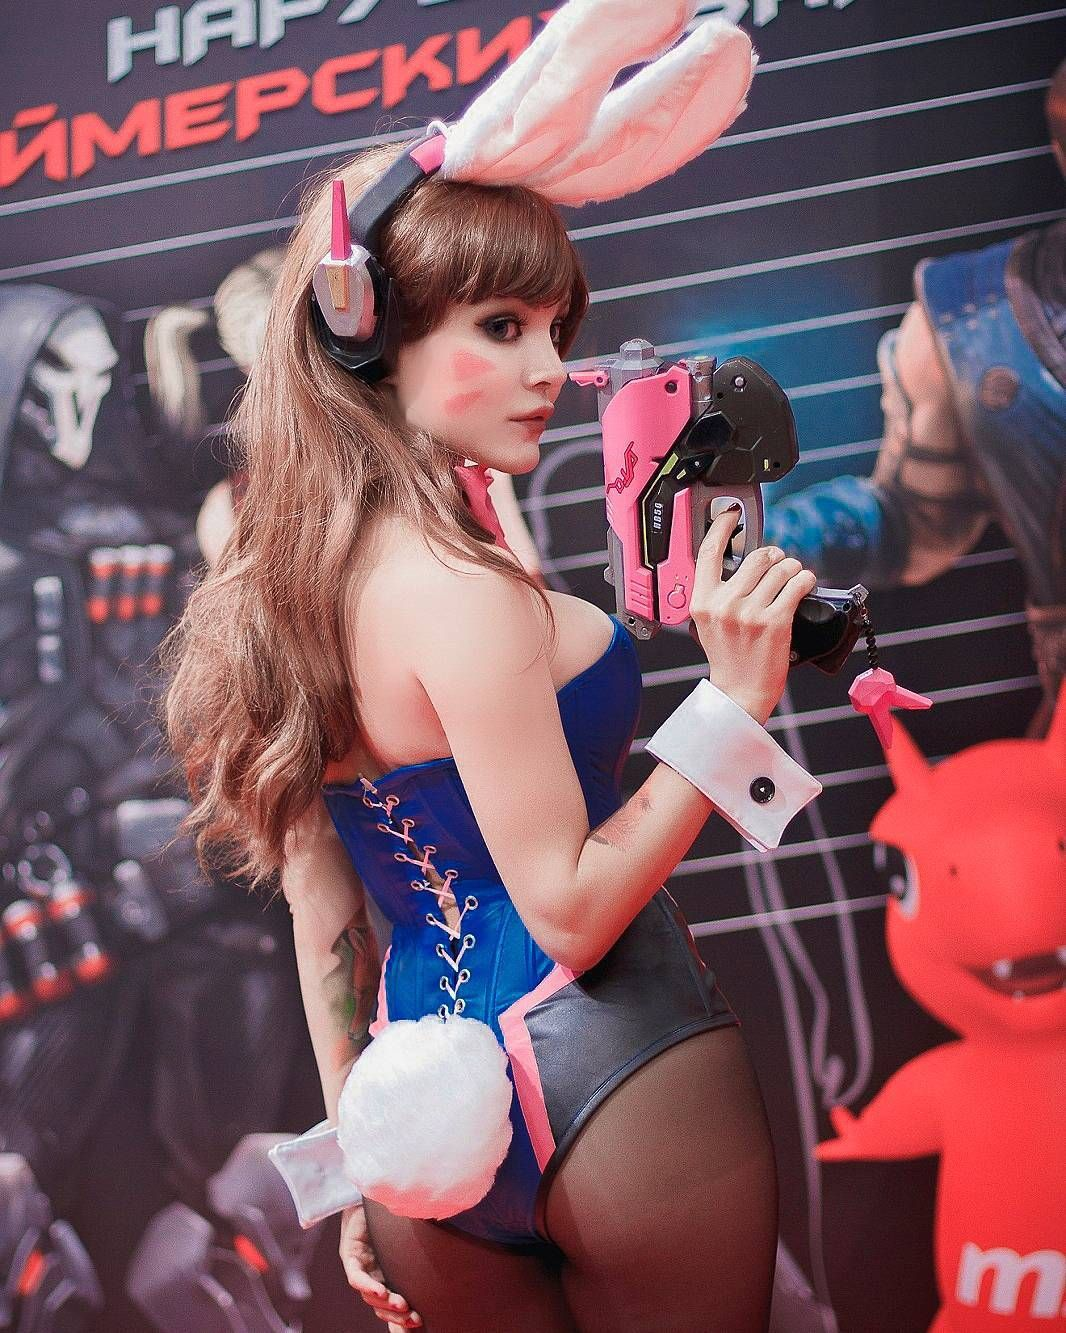 D.Va Hottie Back